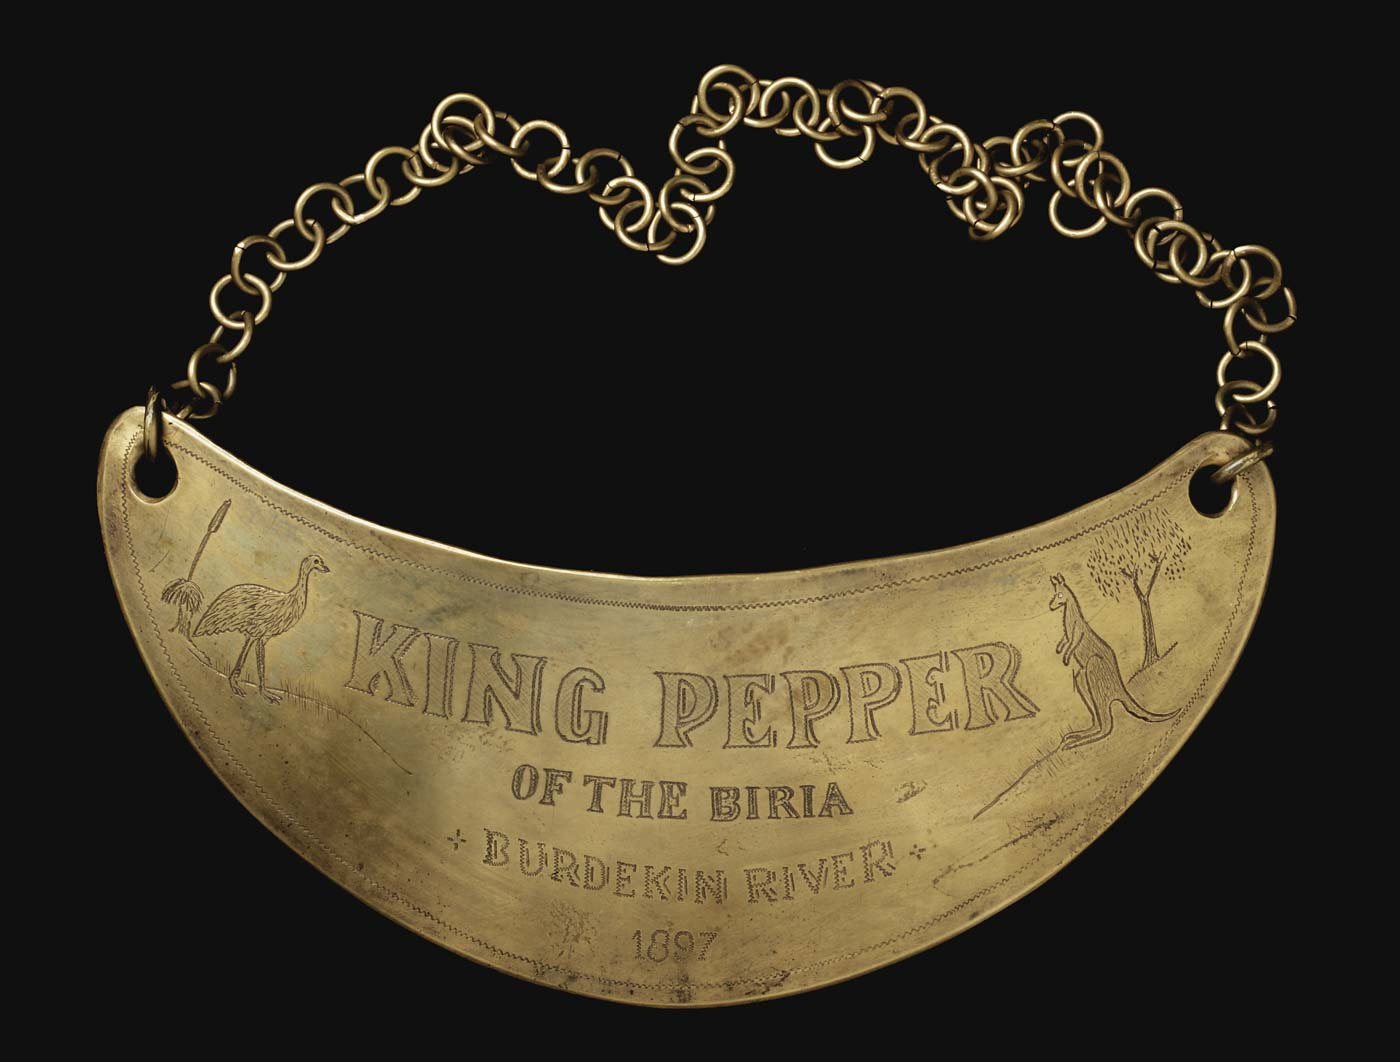 Crescent-shaped plate engraved with text 'King Pepper of the Biria, Burdekin River, 1897'. Includes engraved images of an emu and kangaroo, tree and plant. - click to view larger image